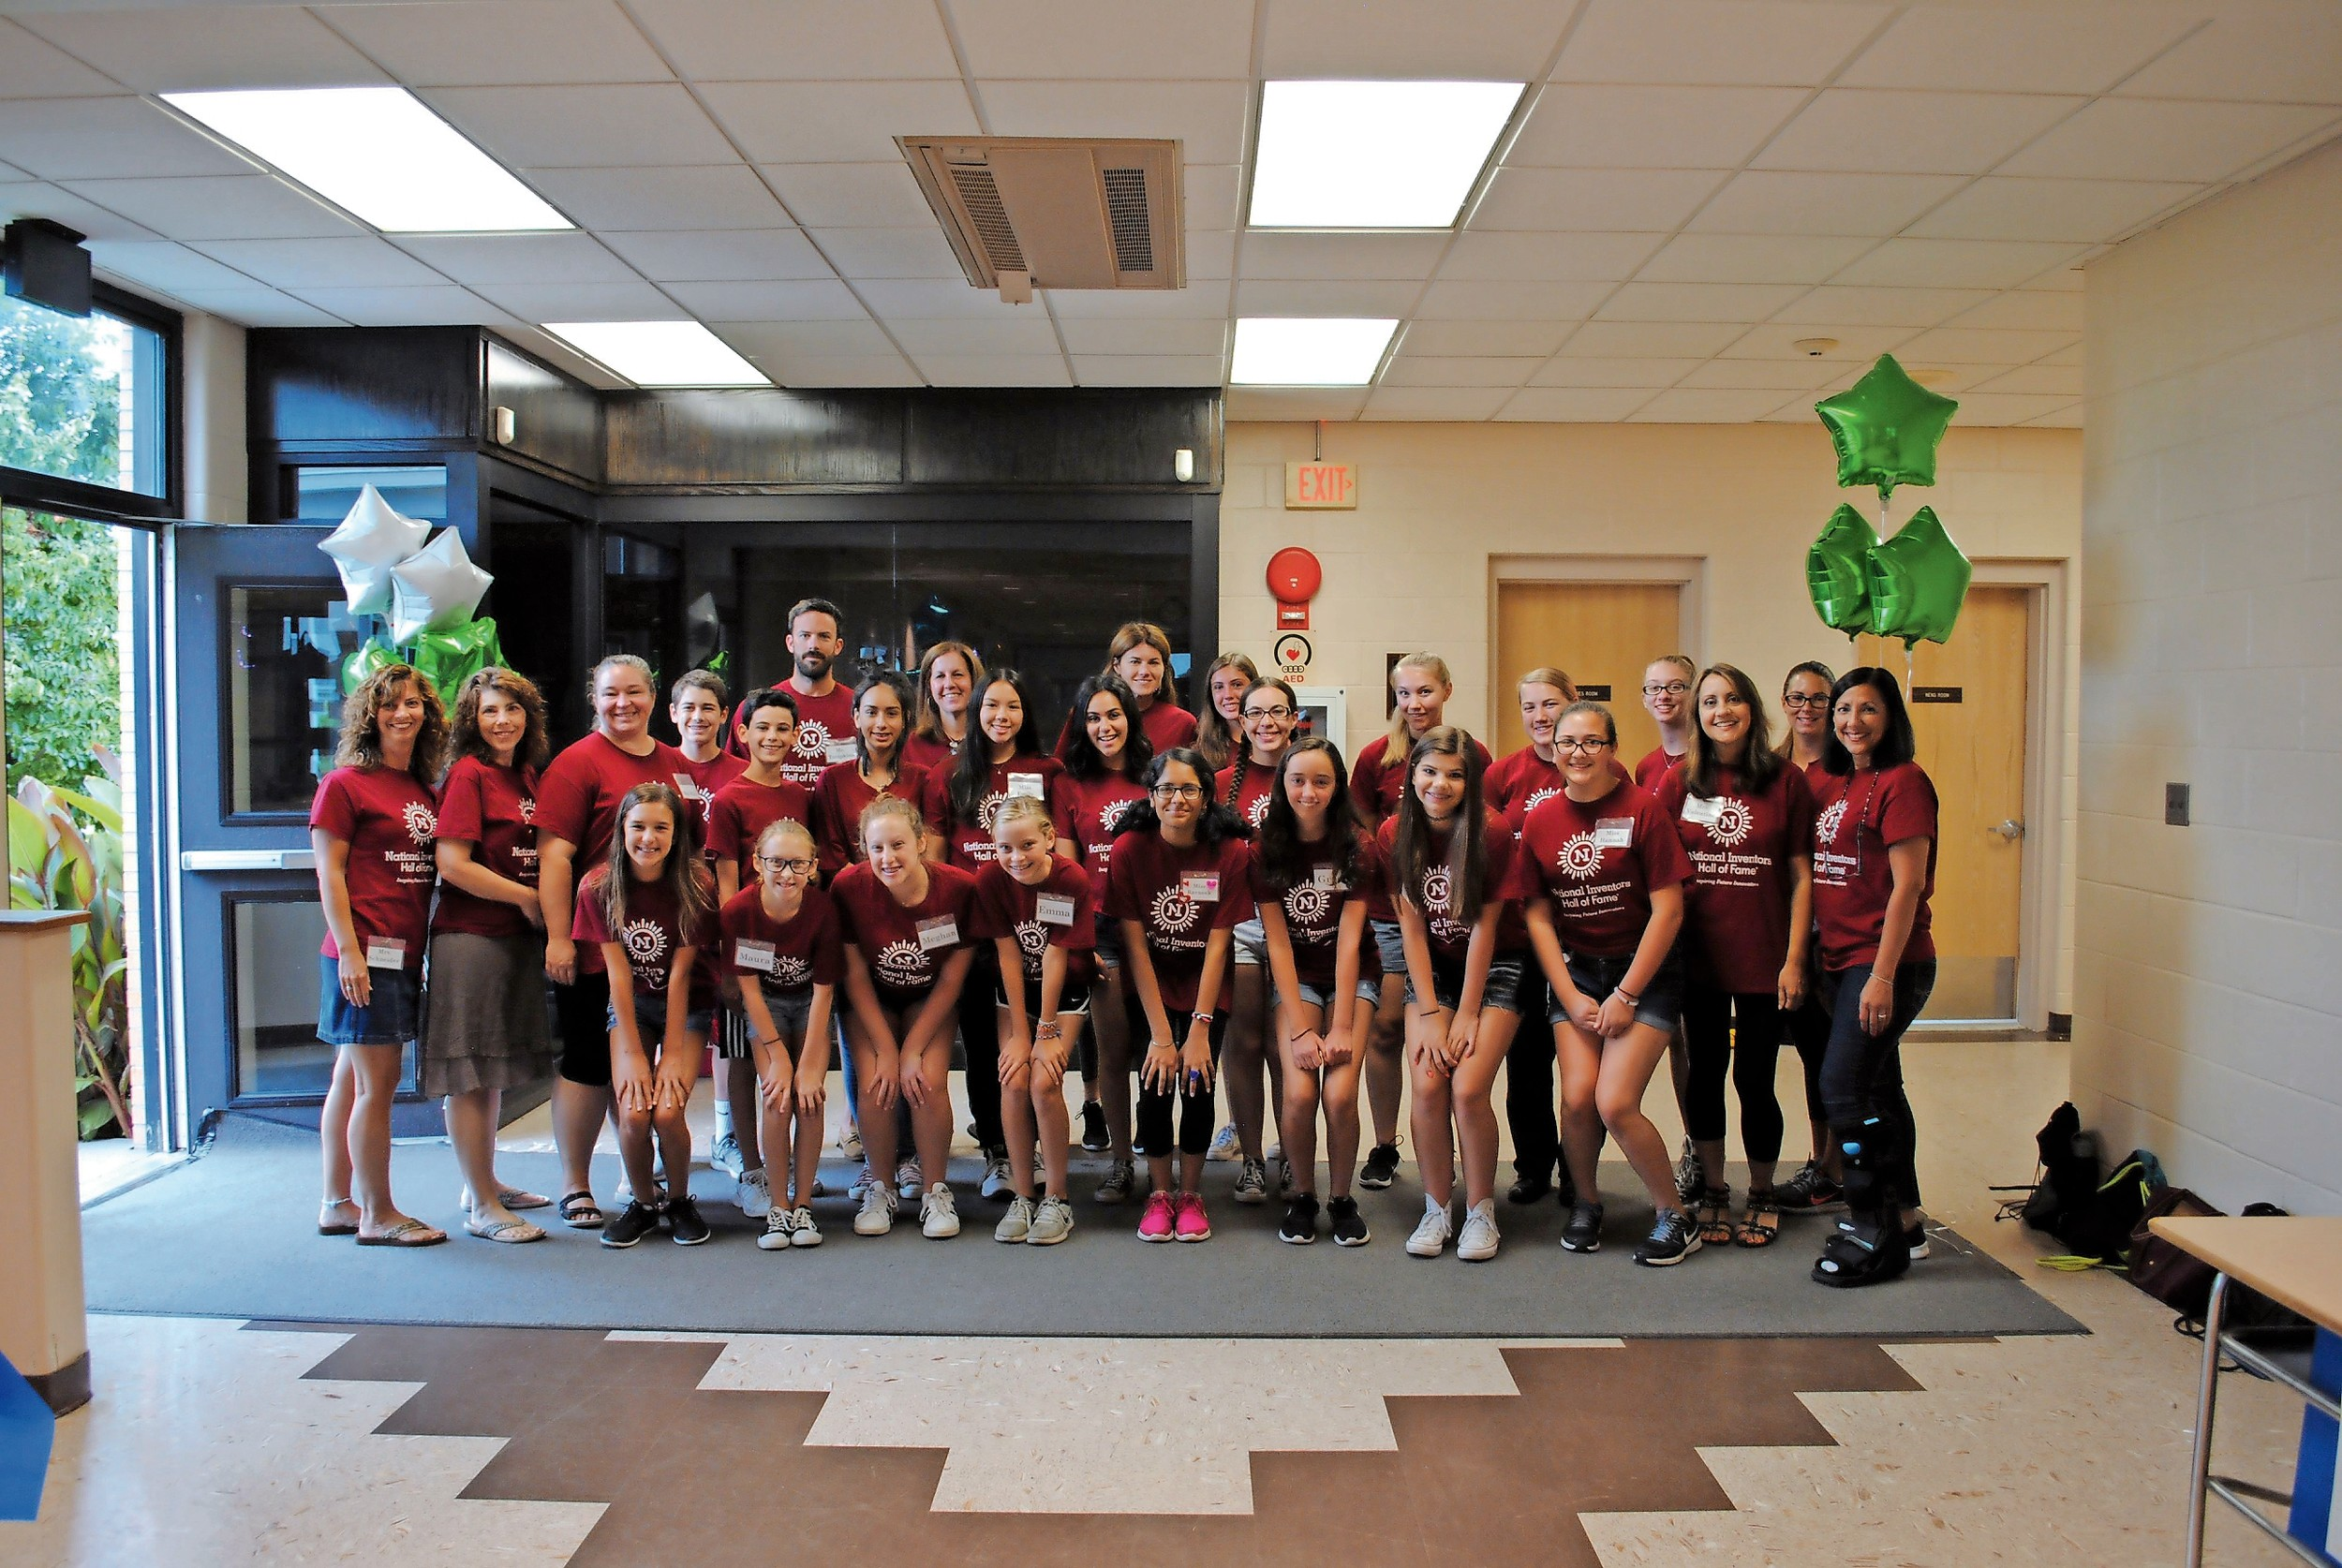 Exactly 27 teachers and teen volunteers from the Levittown School District helped facilitate Camp Invention — a summer program for students entering third, fourth or fifth grade that's focused on STEAM activities.